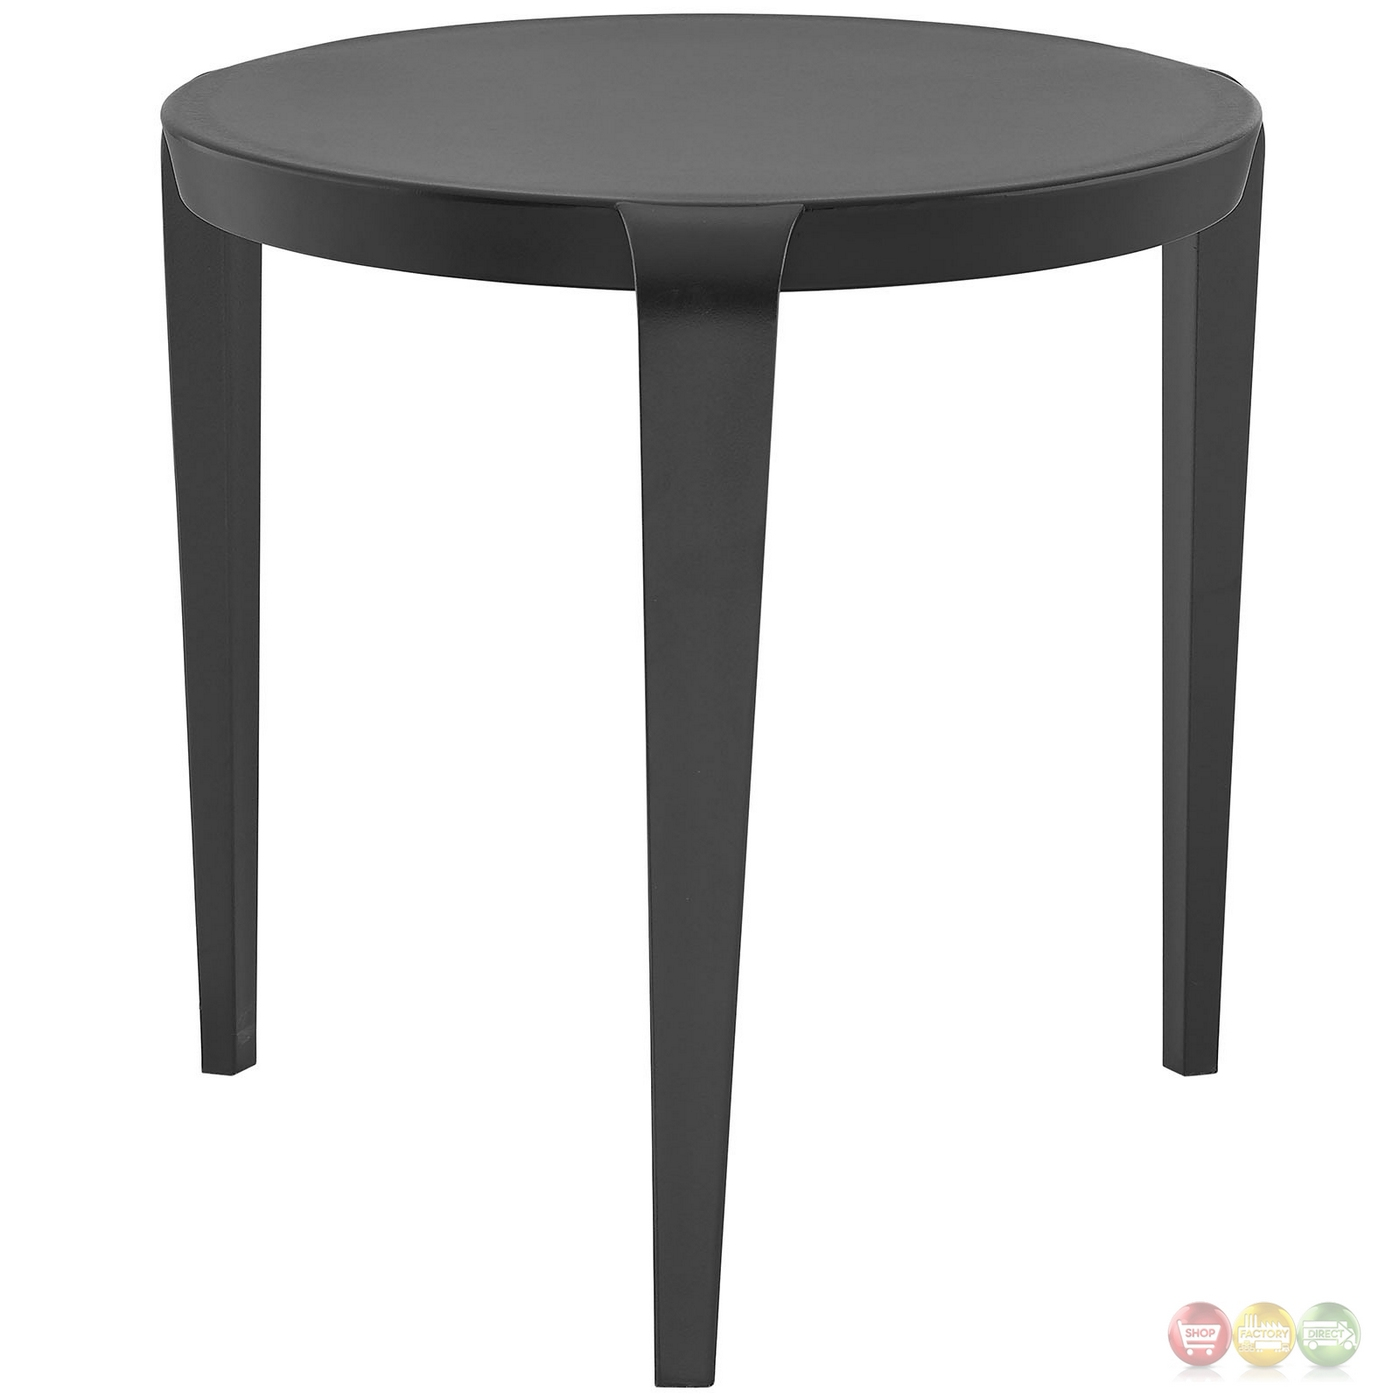 Spin contemporary 3 legged round plastic side table black for Black round end table